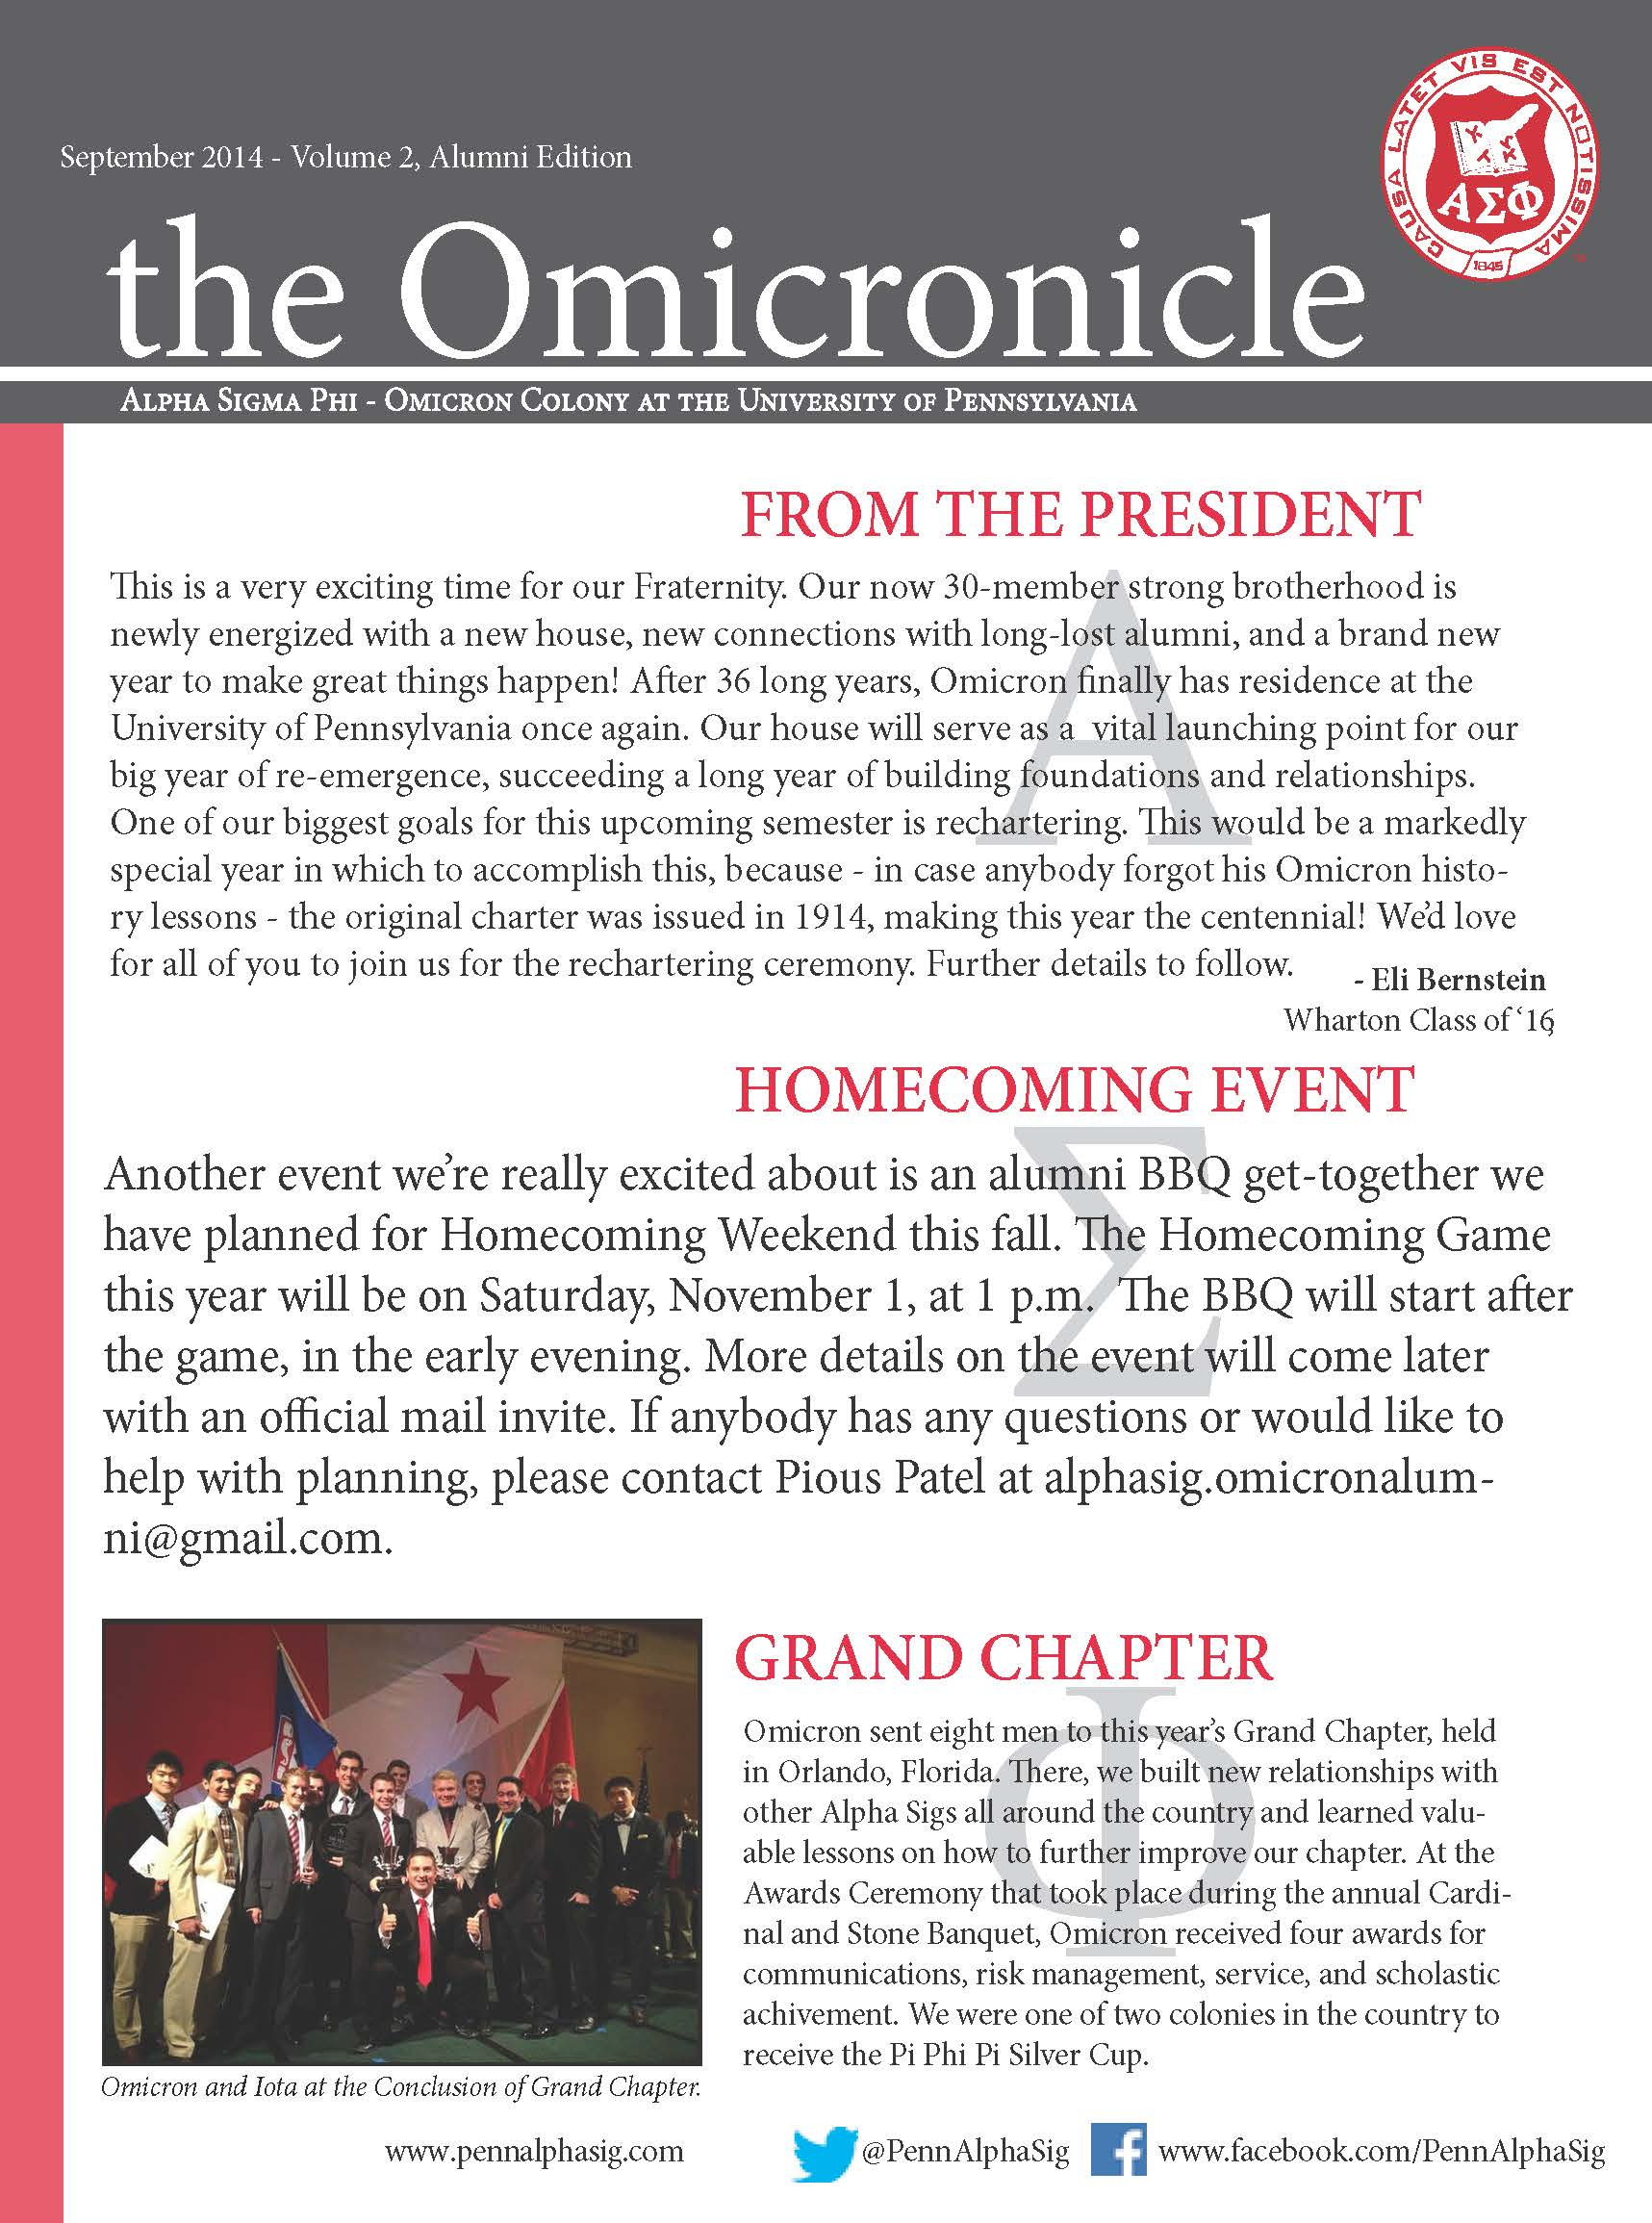 September 2014 Newsletter Page 1.jpg